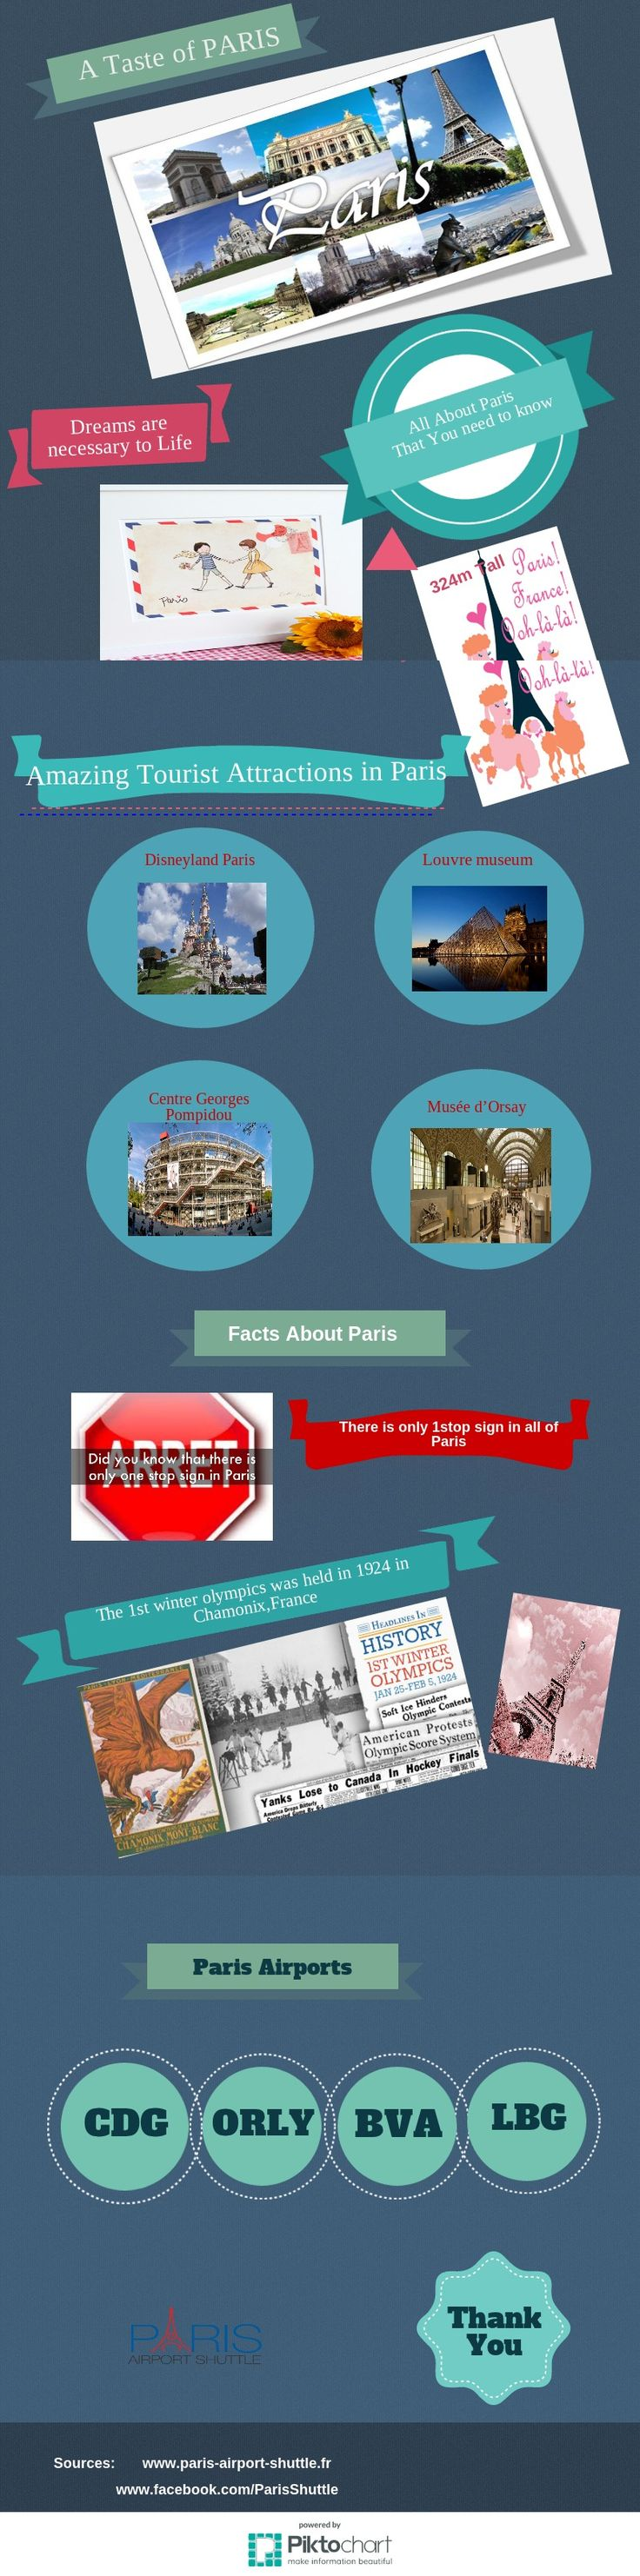 Know About #Fun Fact in #Paris: #Infographics  #Paris is a wonderful city of France where you can get the Practical information by the #infographic. You can come and enjoy all things in Paris with help of Guide and tourist information about Paris airports.  Visit this Infographic: https://magic.piktochart.com/output/8486189-paris-city-tour